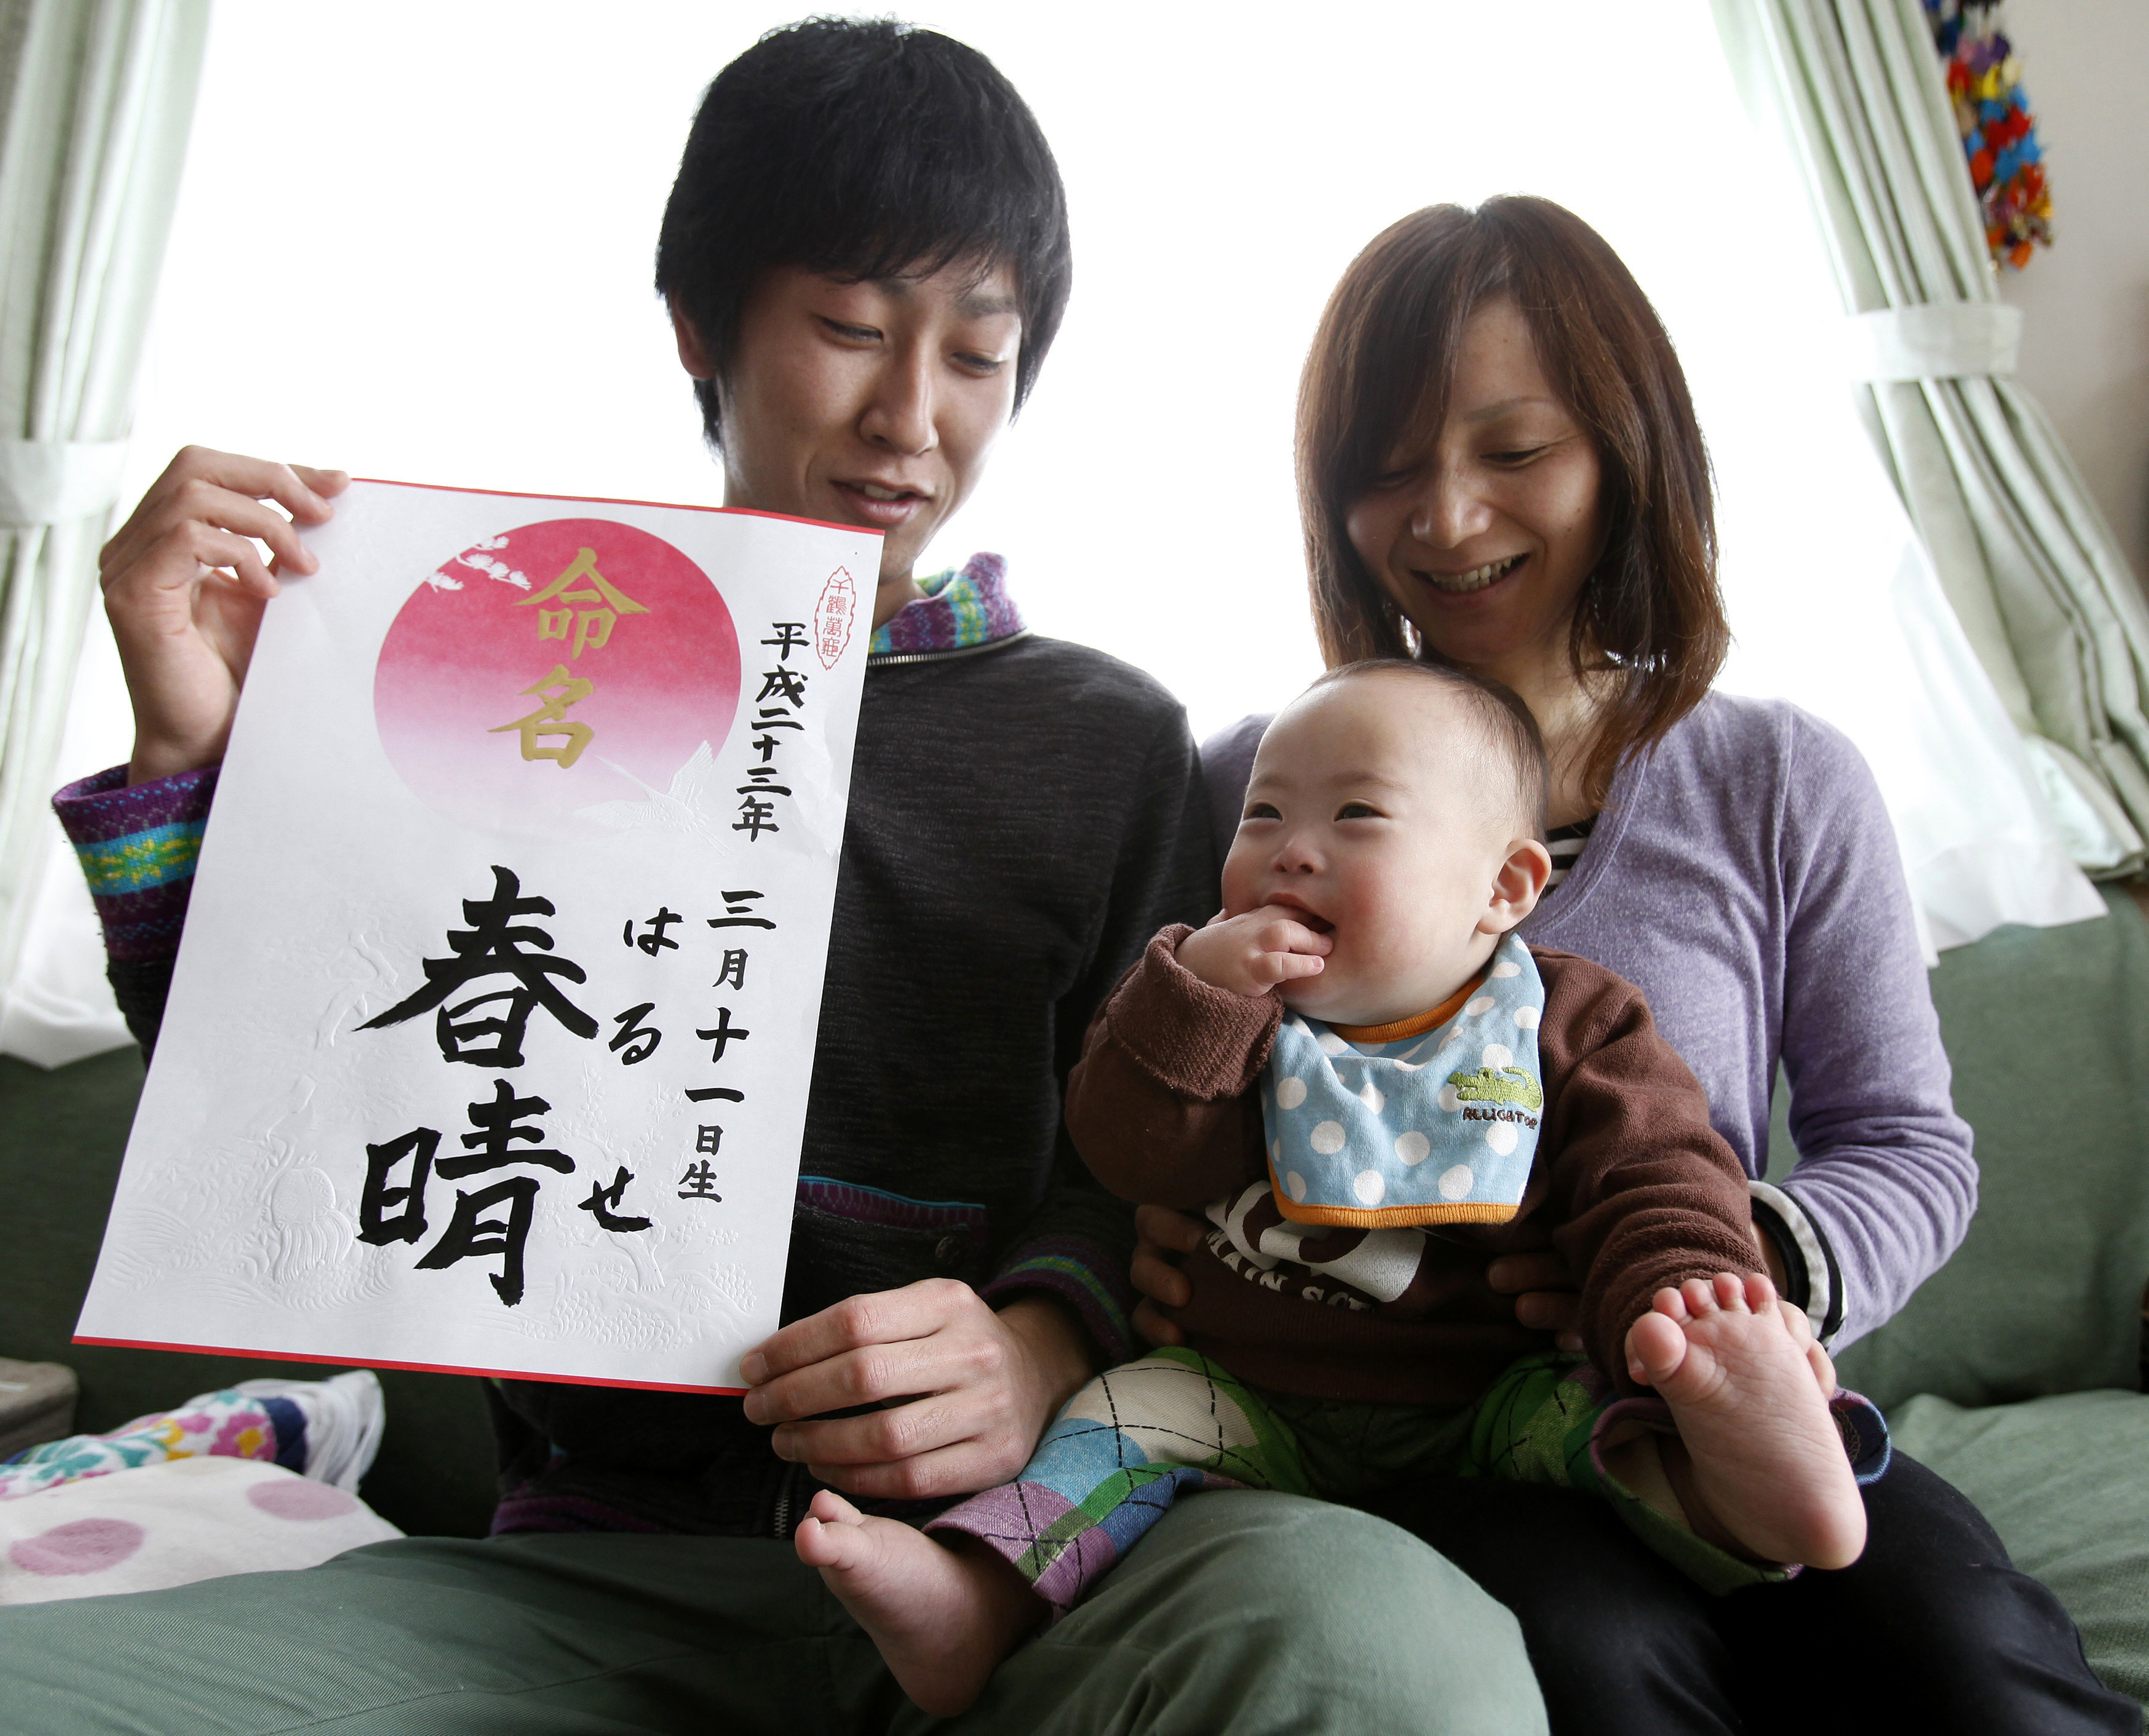 """Hiromi Sato holds her son, Haruse, as her husband, Kenji Sato, holds a calligraphy with the characters of his son's name and the date he was born during a photo opportunity at their home in Minamisanriku, northeastern Japan, March 3, 2012. Hiromi gave birth to her son at the Ishinomaki Red Cross hospital on March 11, 2011, the same day when the massive 9.0 magnitude earthquake struck off the northeastern coast of Japan. In a fortunate twist of fate, Kenji Sato, a wiry descendant of fishermen in his coastal hometown of Minamisanriku, took time off from work to see his third child, Haruse, born at a hospital in the nearby port city. A year on, the Satos, who all survived the tsunami since their house was built on a hill, are planning a quiet birthday with some cake and ice cream for the child who, his grandmother Kazuko insists, """"was born to save us"""" Picture taken March 3, 2012.  REUTERS/Yuriko Nakao (JAPAN - Tags: DISASTER ANNIVERSARY TPX IMAGES OF THE DAY) - GM1E83611GX01"""